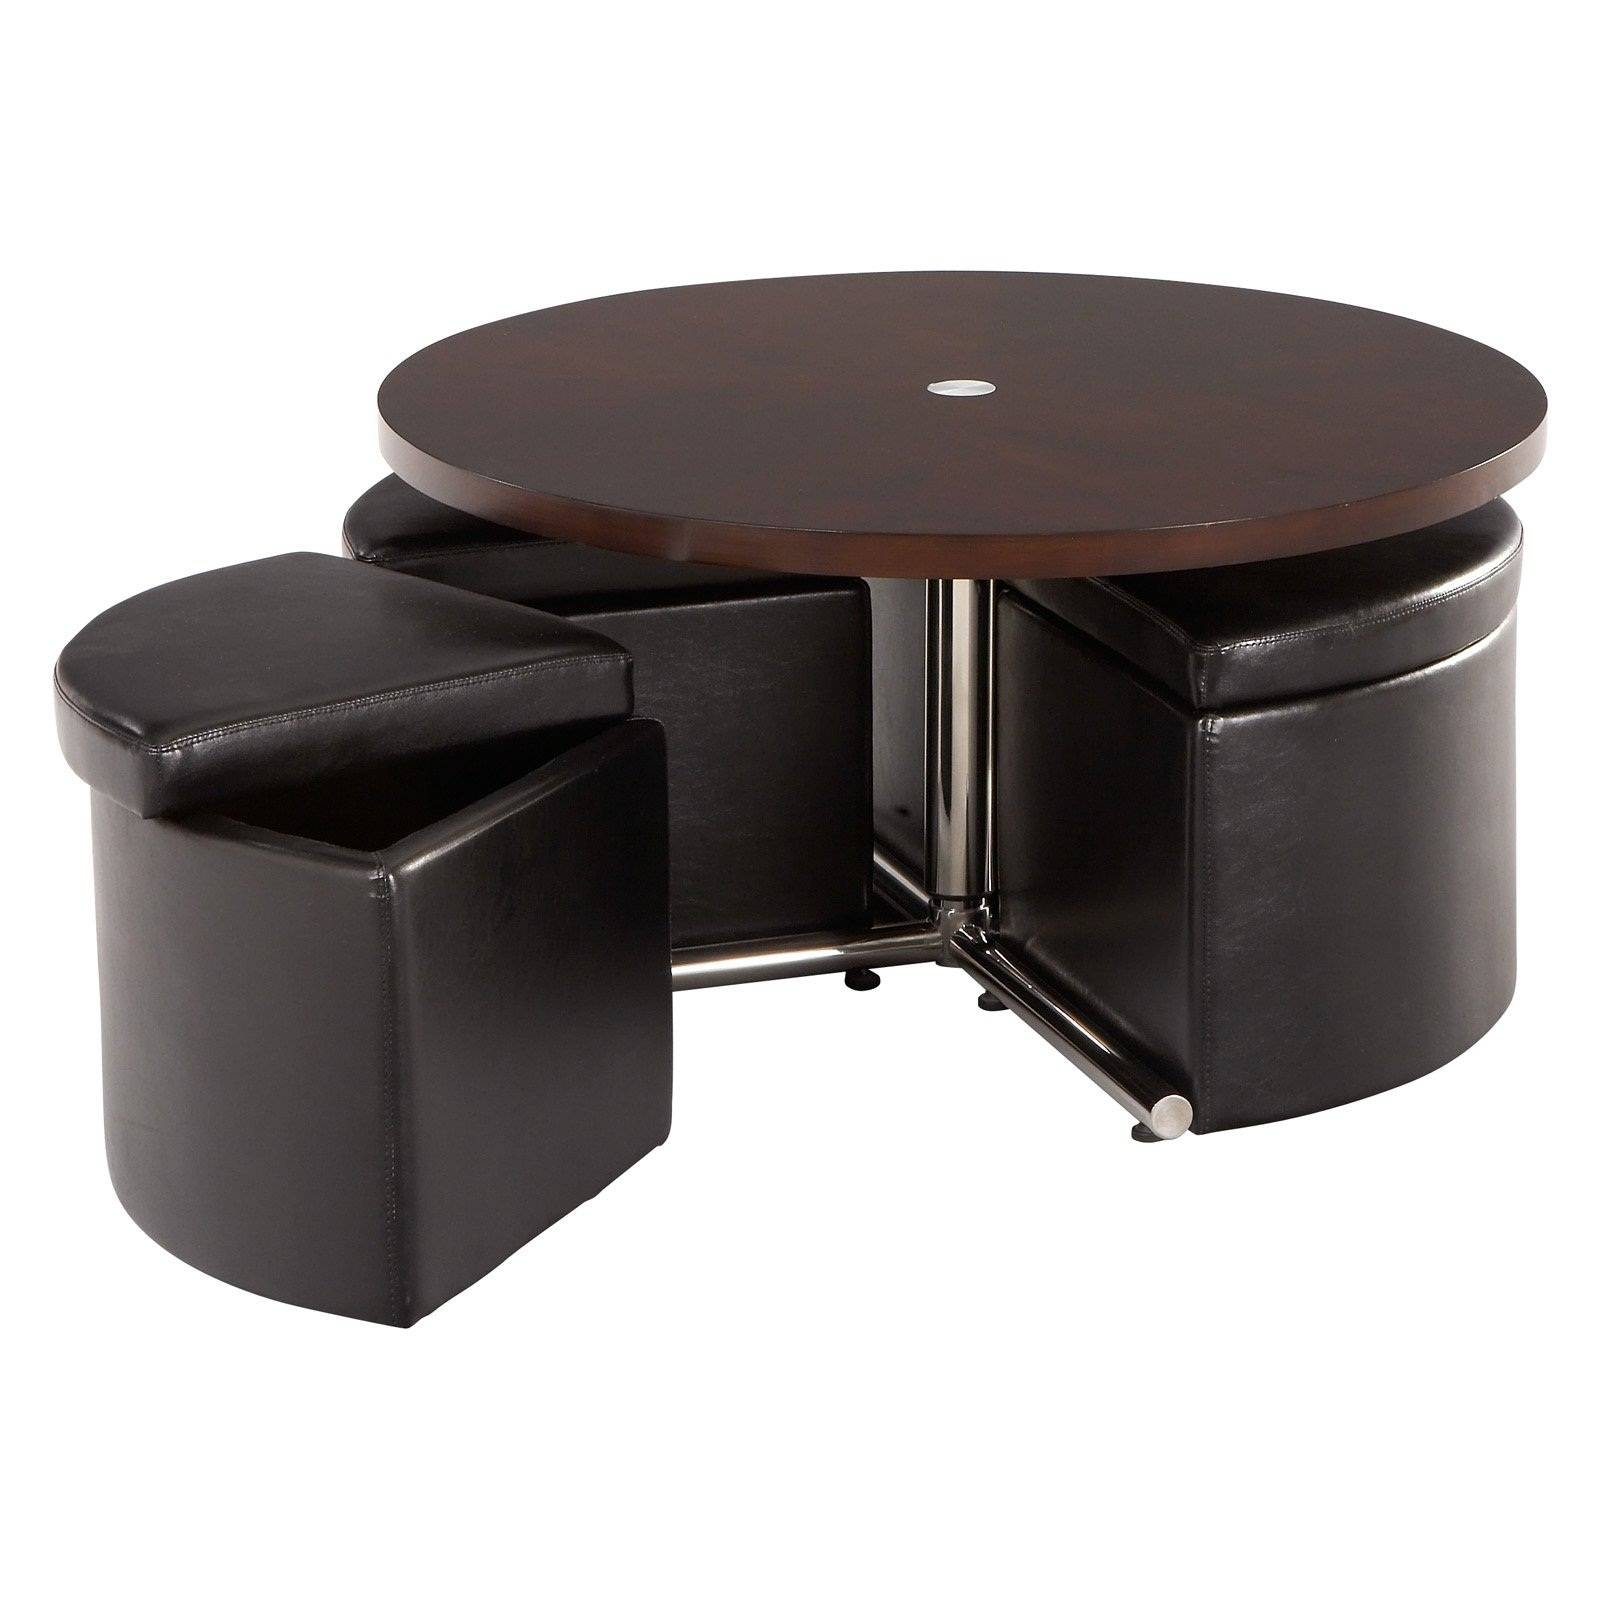 Marvellous Round Coffee Table With Storage Seats – Round Coffee within Circular Coffee Tables With Storage (Image 19 of 30)